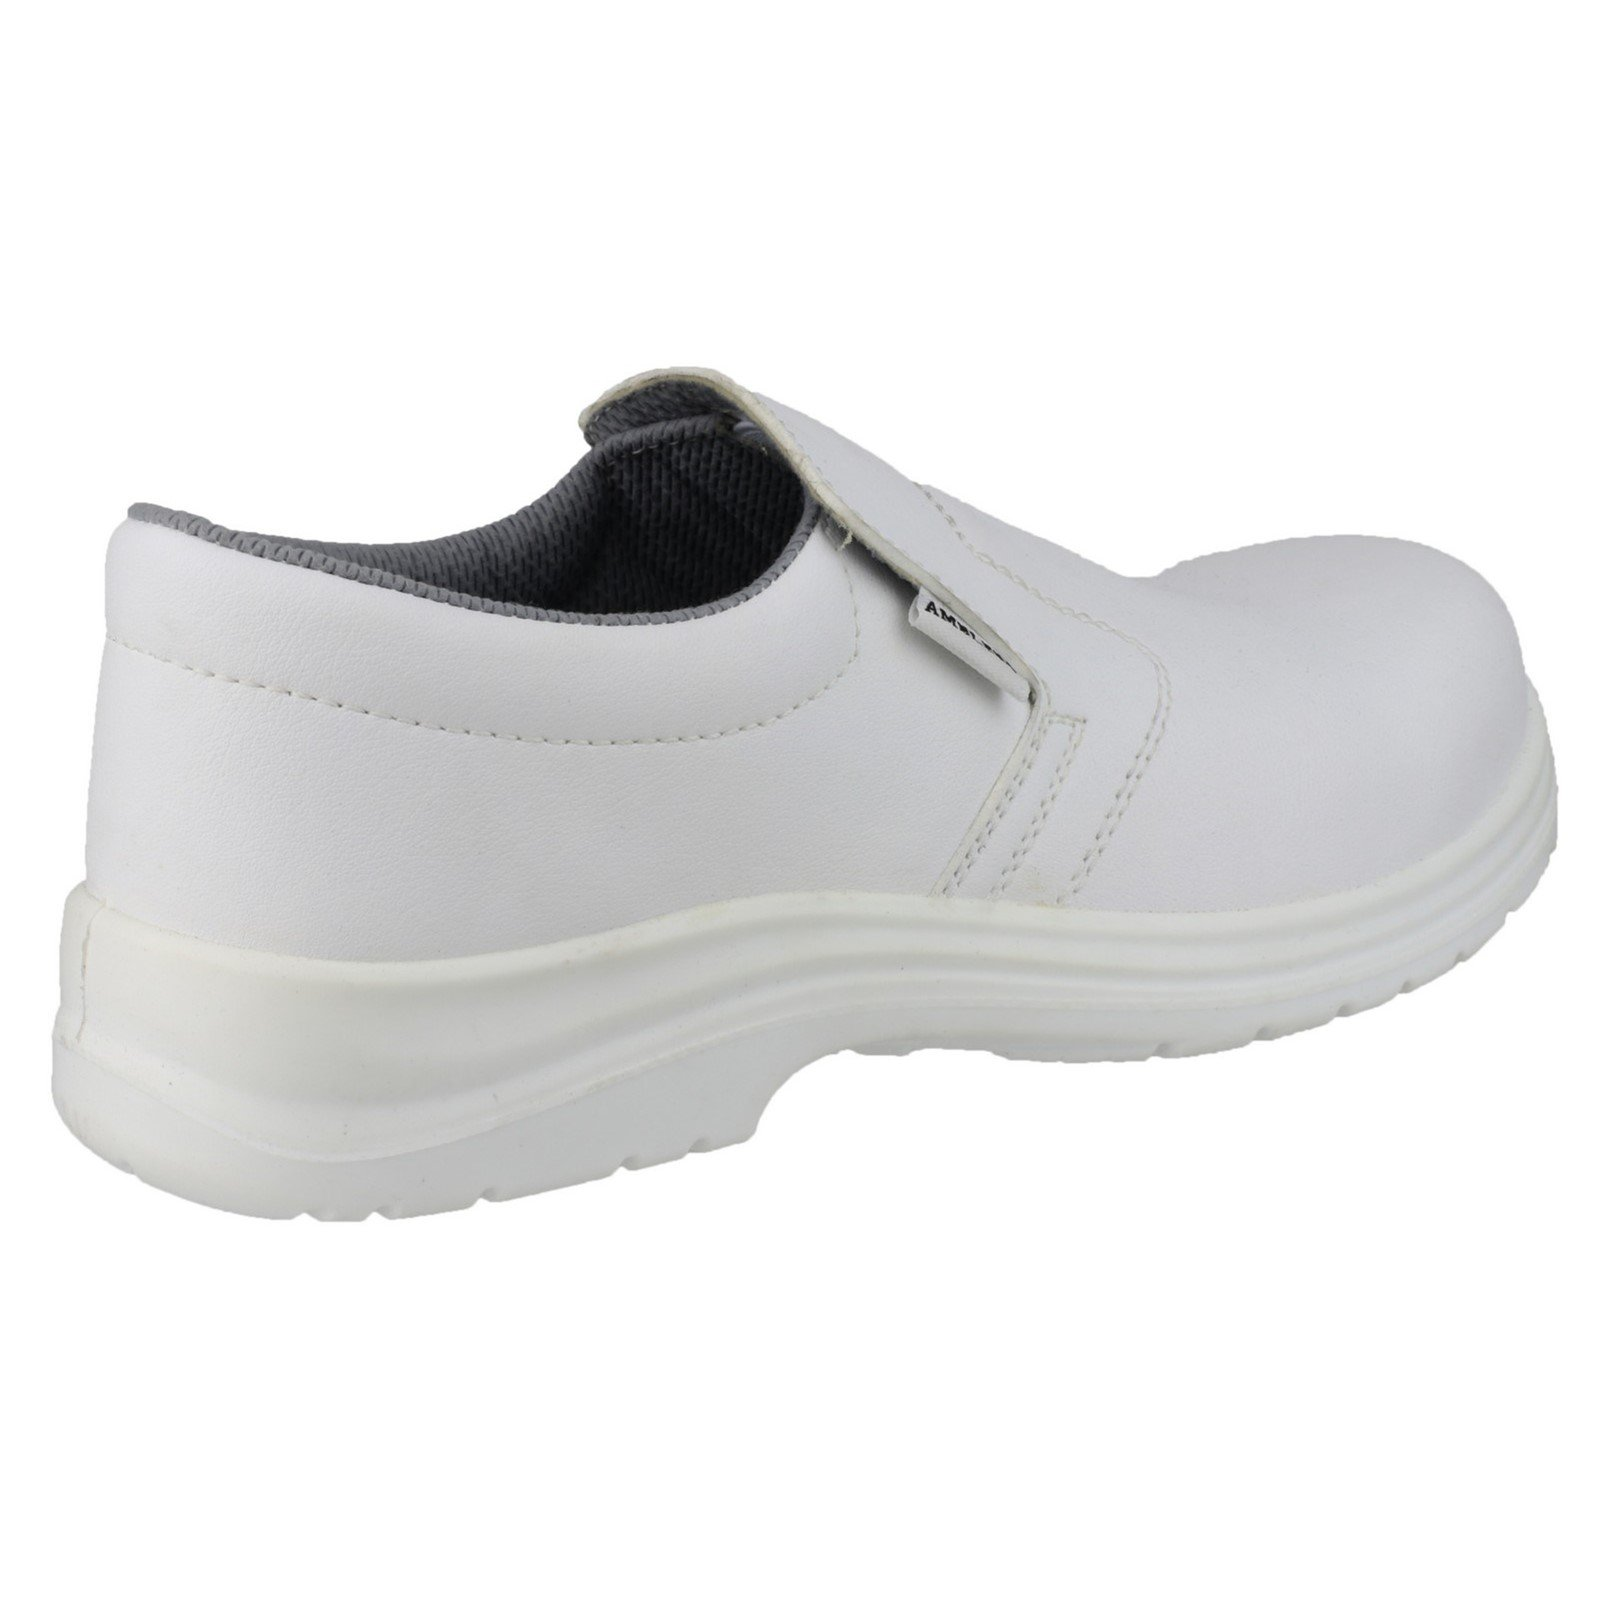 3928923678ff Amblers Safety FS510 Mens/Womens White Slip On Work Safety Shoes ...